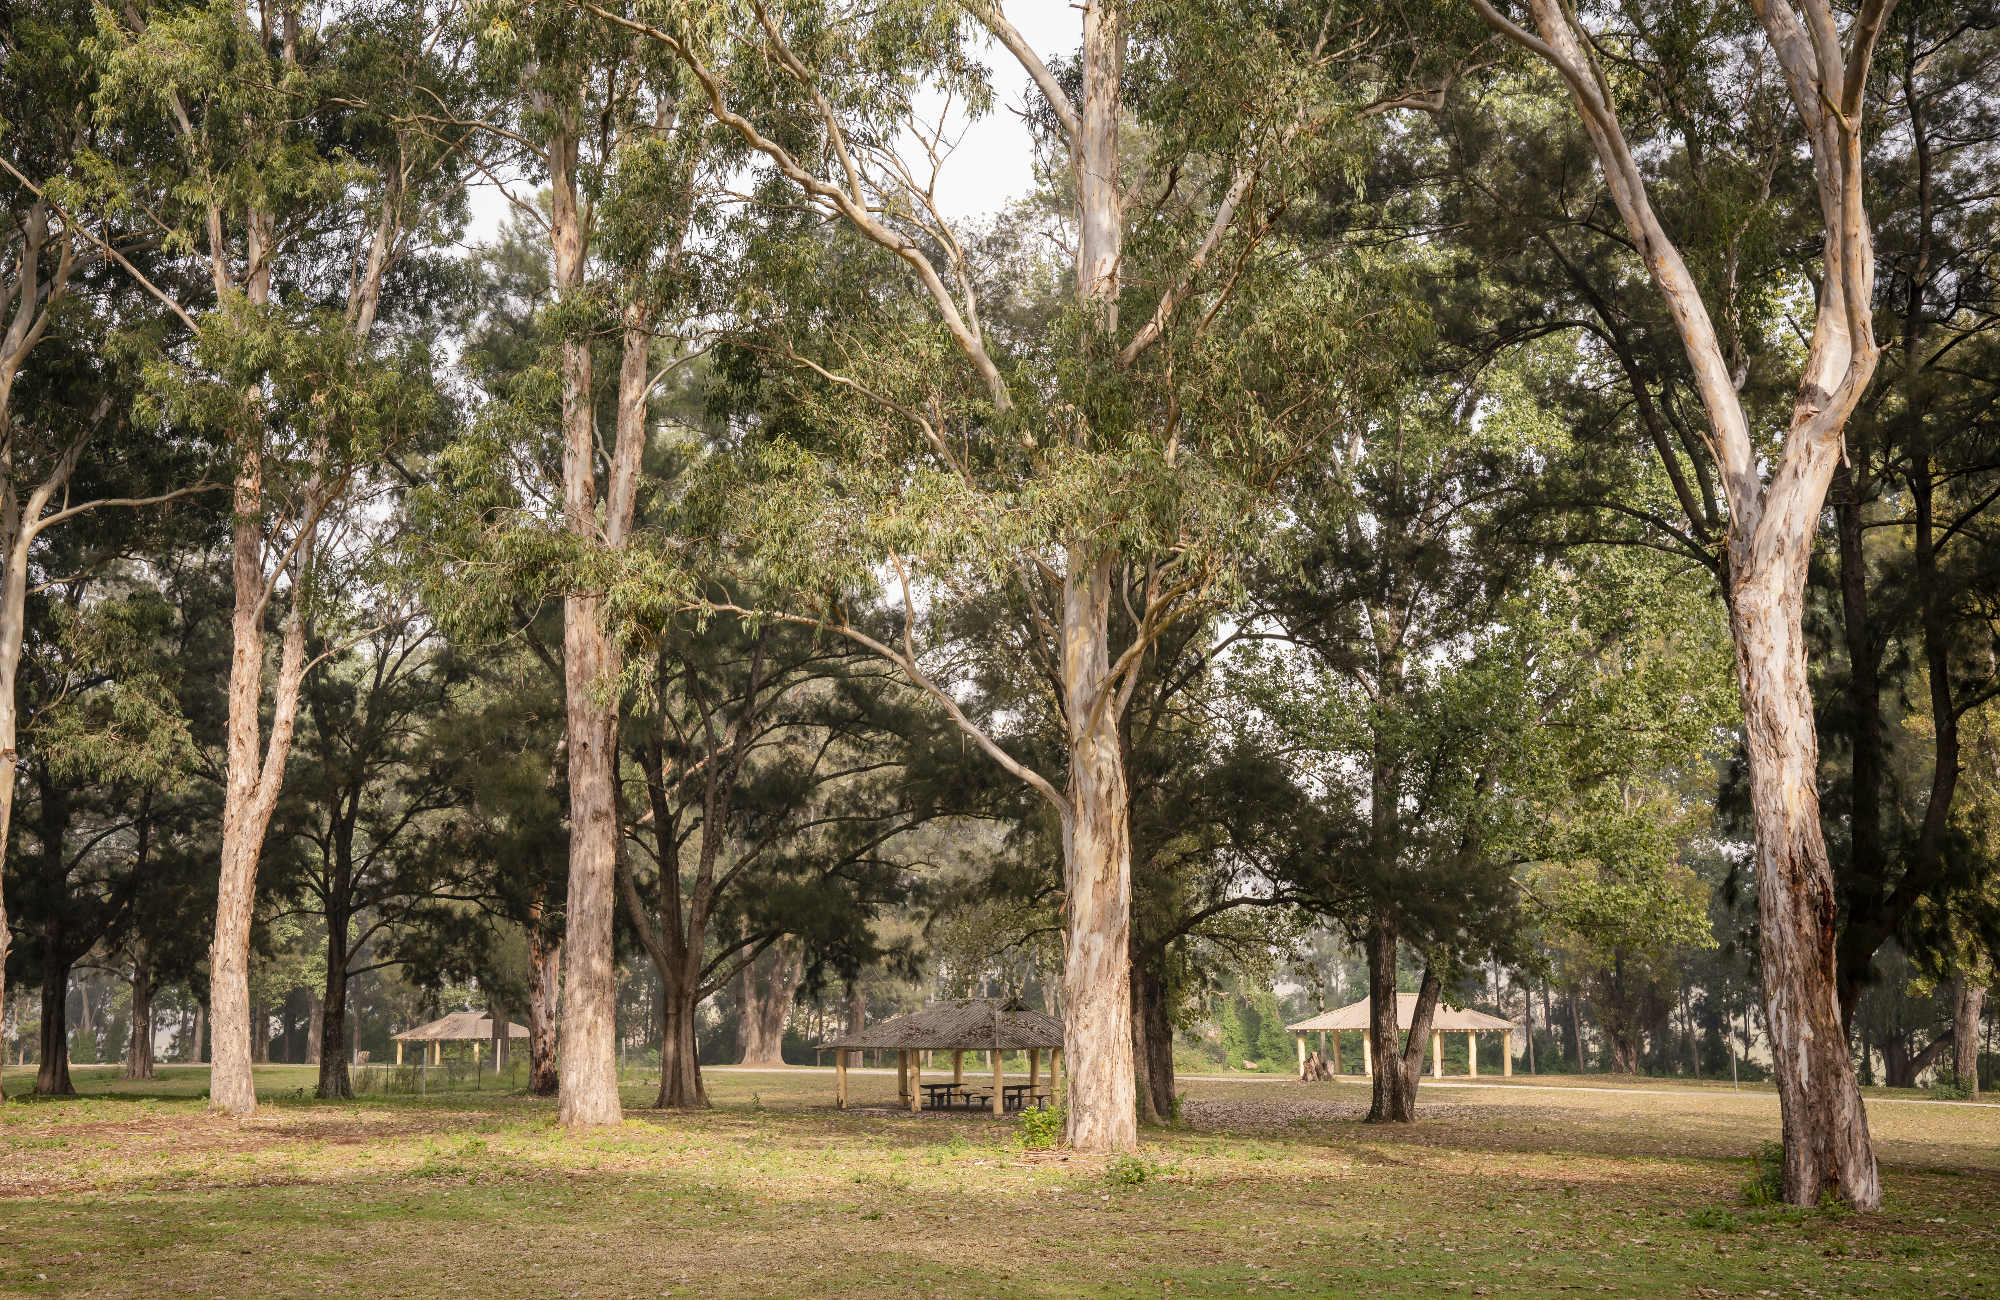 Picnic sheds spread out across Cattai Farm picnic area, surrounded by tall eucalypt trees, in Cattai National Park. Photo: John Spencer/OEH